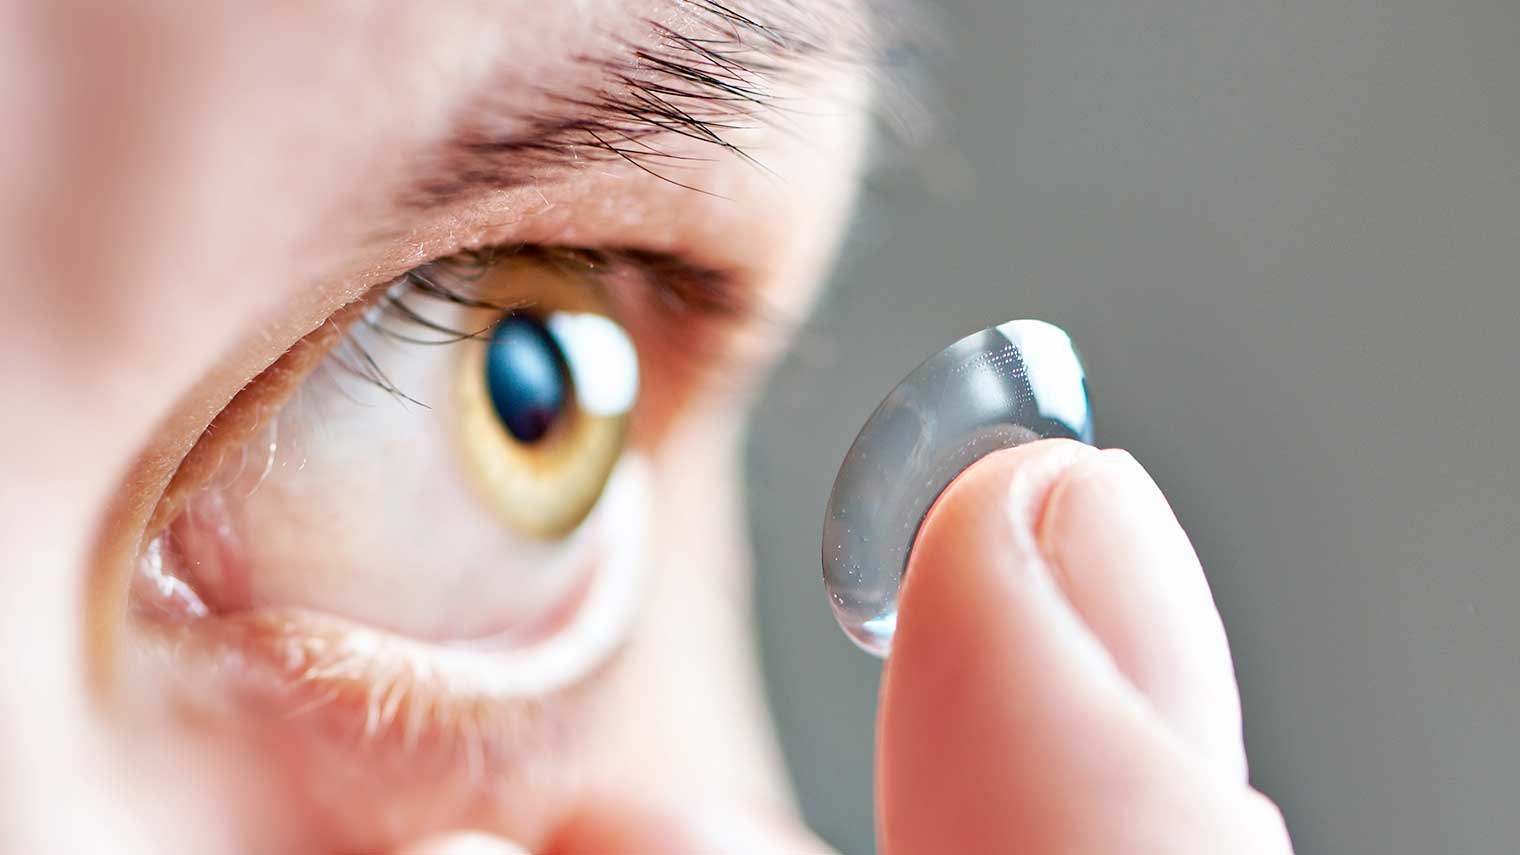 Tips on How to Avoid Low Quality Contact Lens